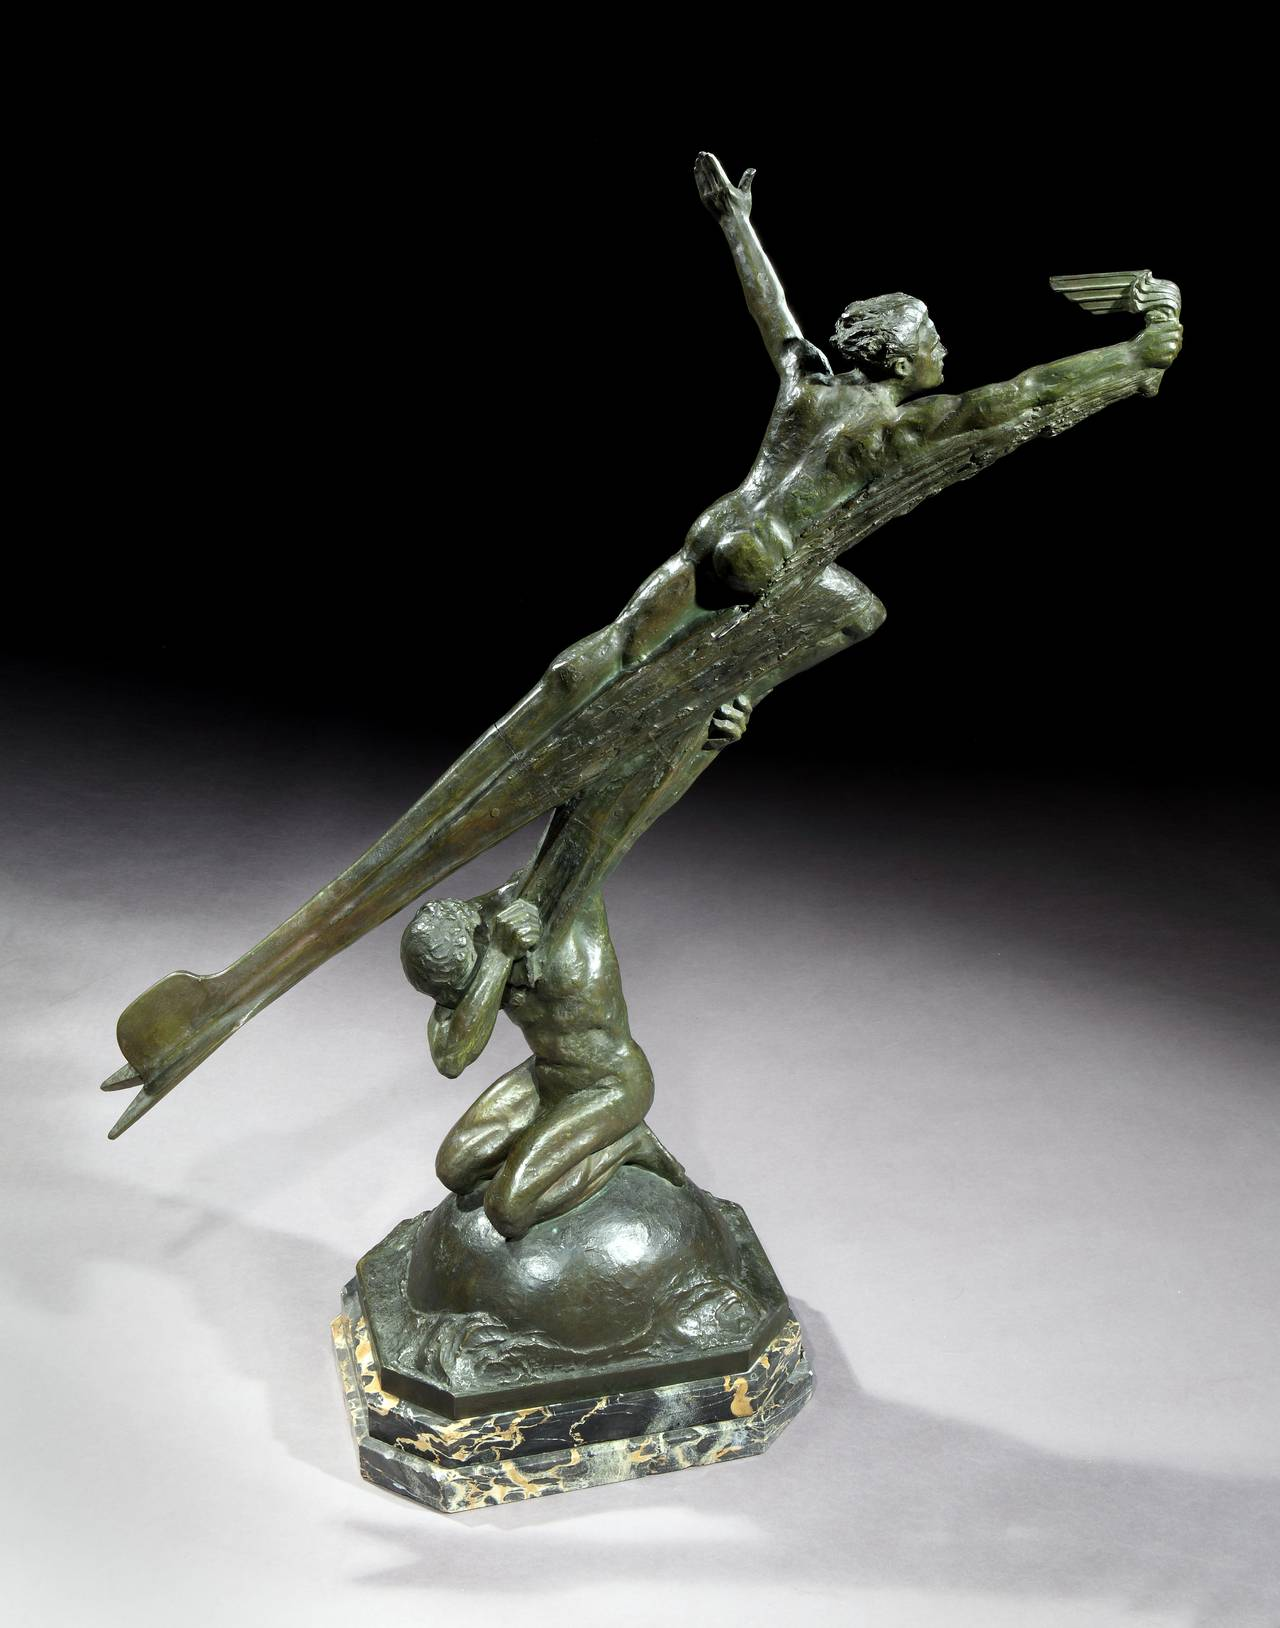 Frederic C. Focht (Born 1879, died circa 1937)  Frederic Focht was born in Paris in 1879 and studied under the celebrated sculptor Falguiere. His remarkable talent was recognized early in his career, exhibiting at the Salon des ArtistesFrançais